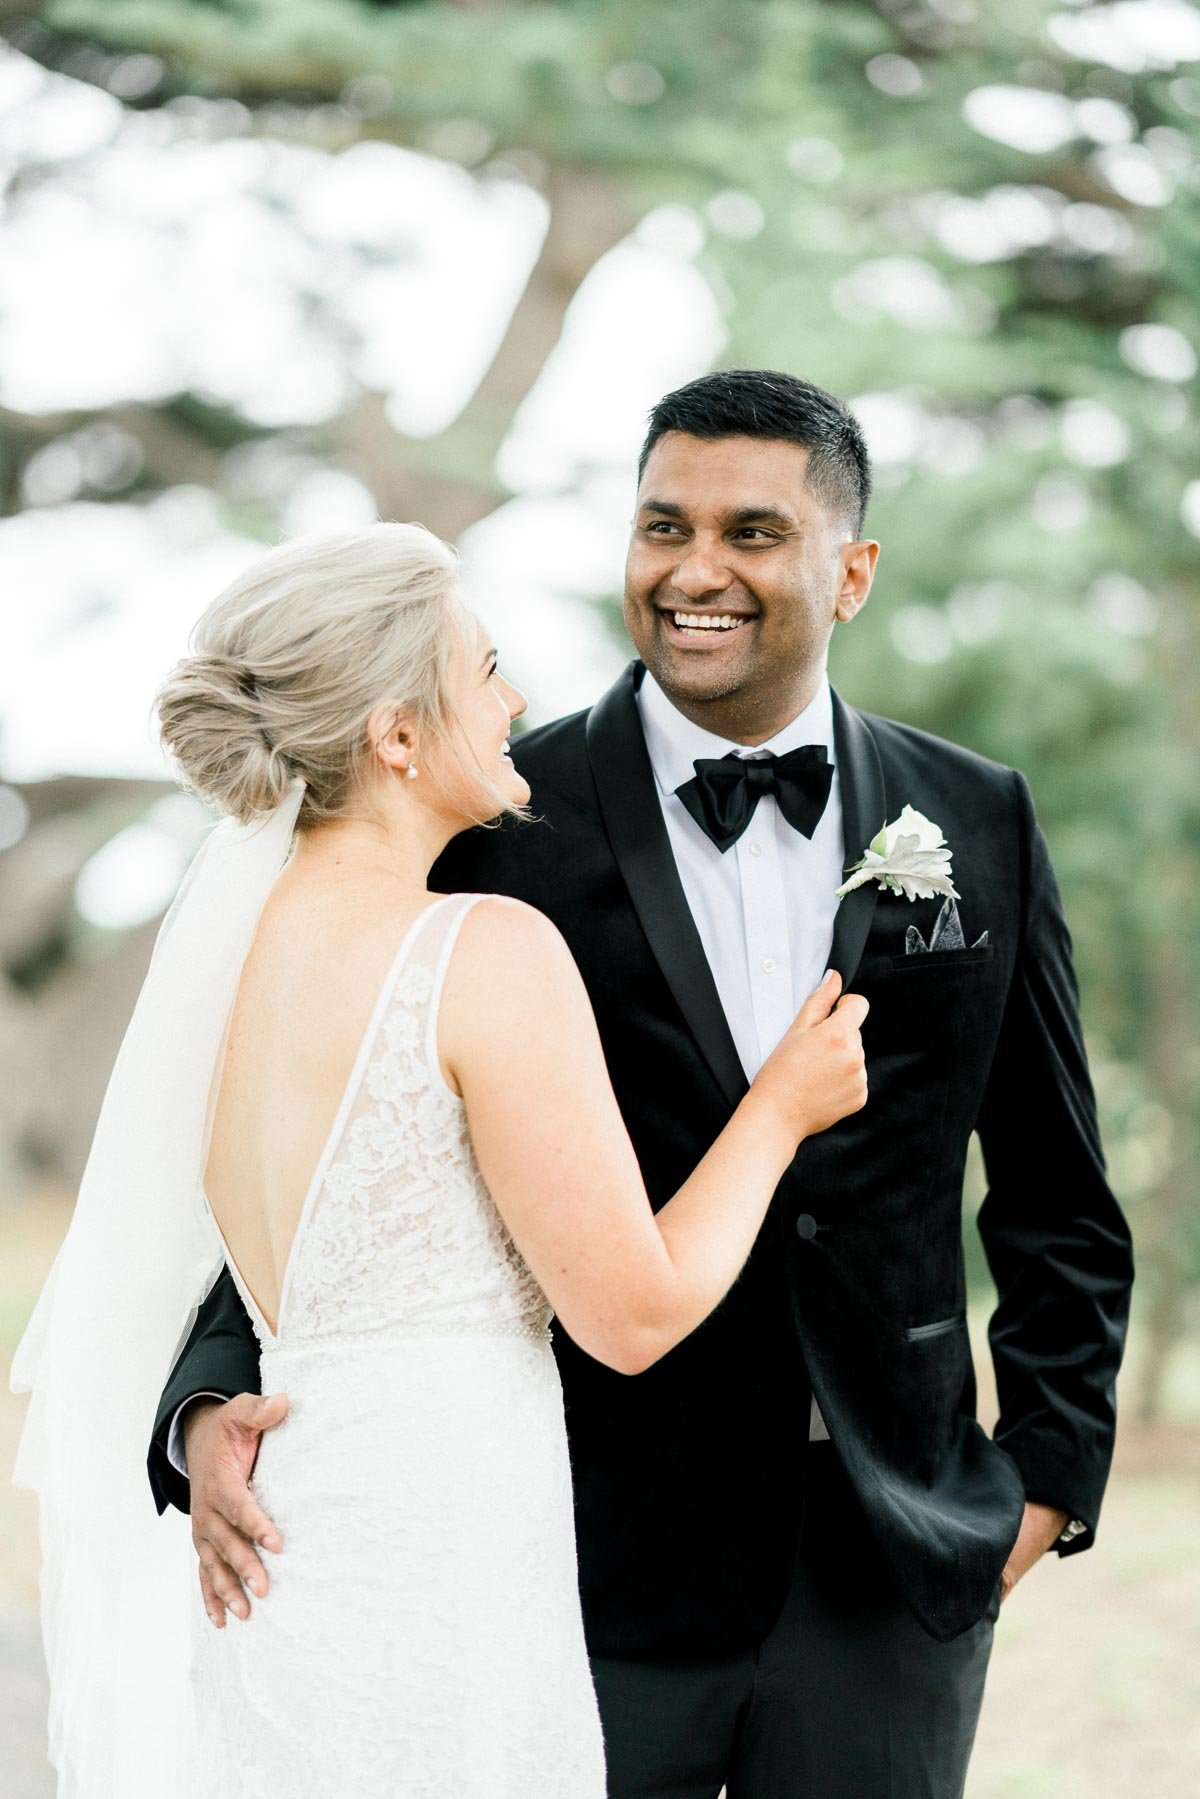 trenavin-chapel-phillip-island-wedding-heart+soul-weddings-sally-sean-01441